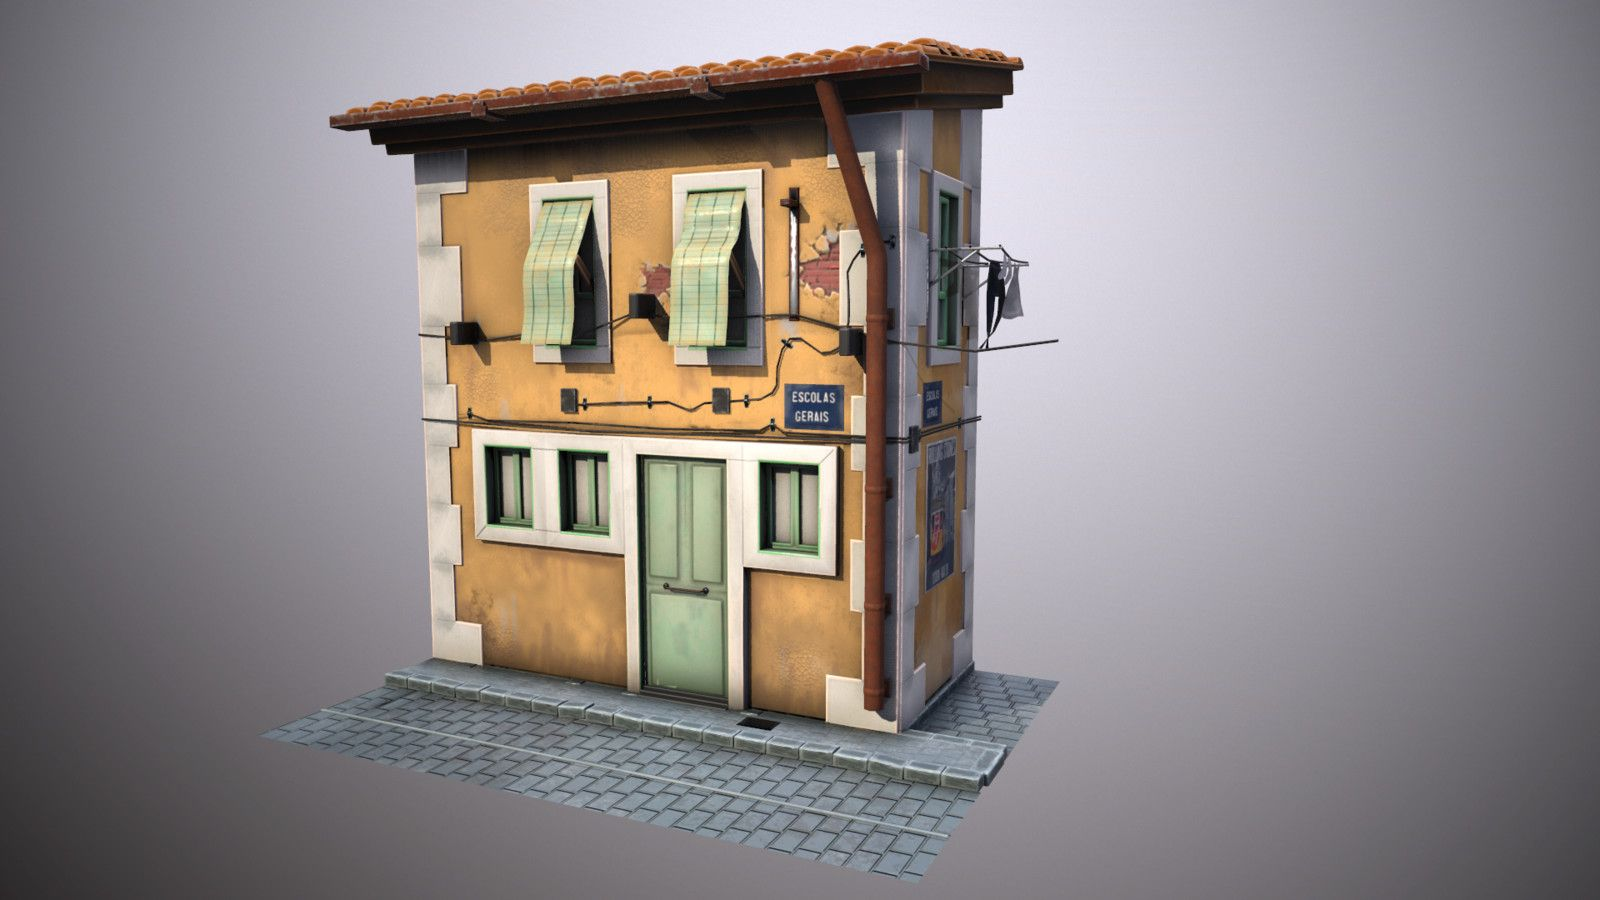 Lisbon House stylized, Clément RIGONDET on ArtStation at https://www.artstation.com/artwork/ADJlX